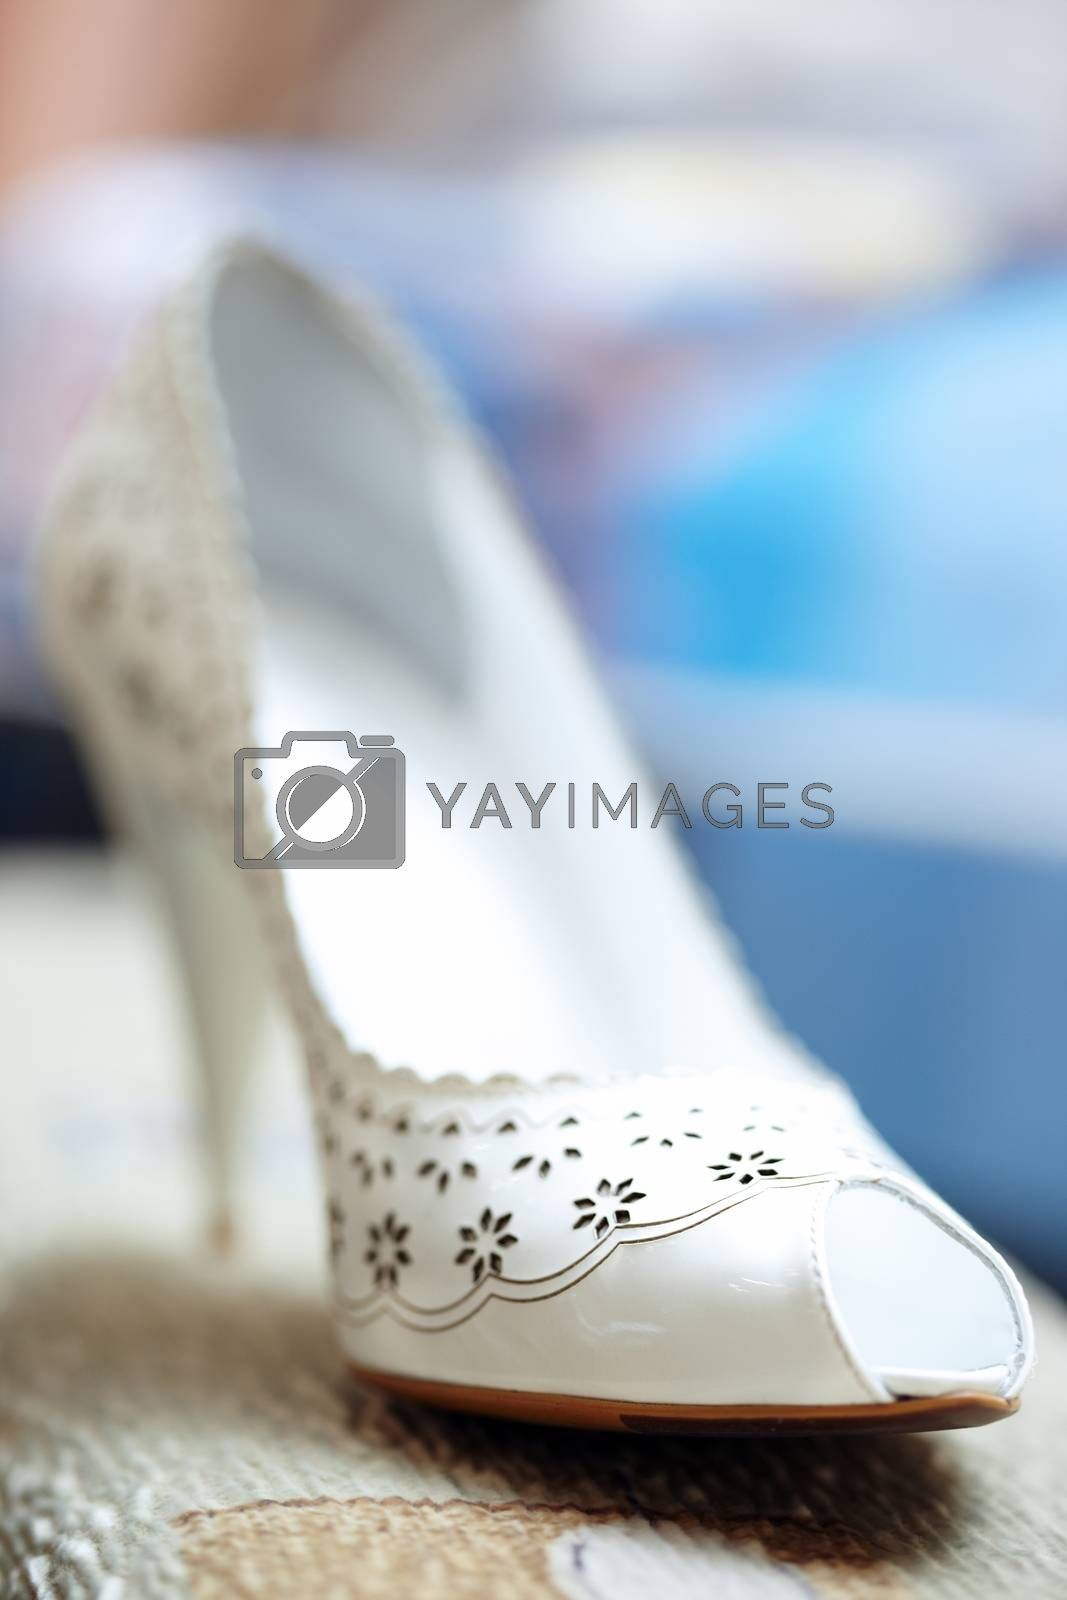 White woman shoe indoors. Natural colors and light